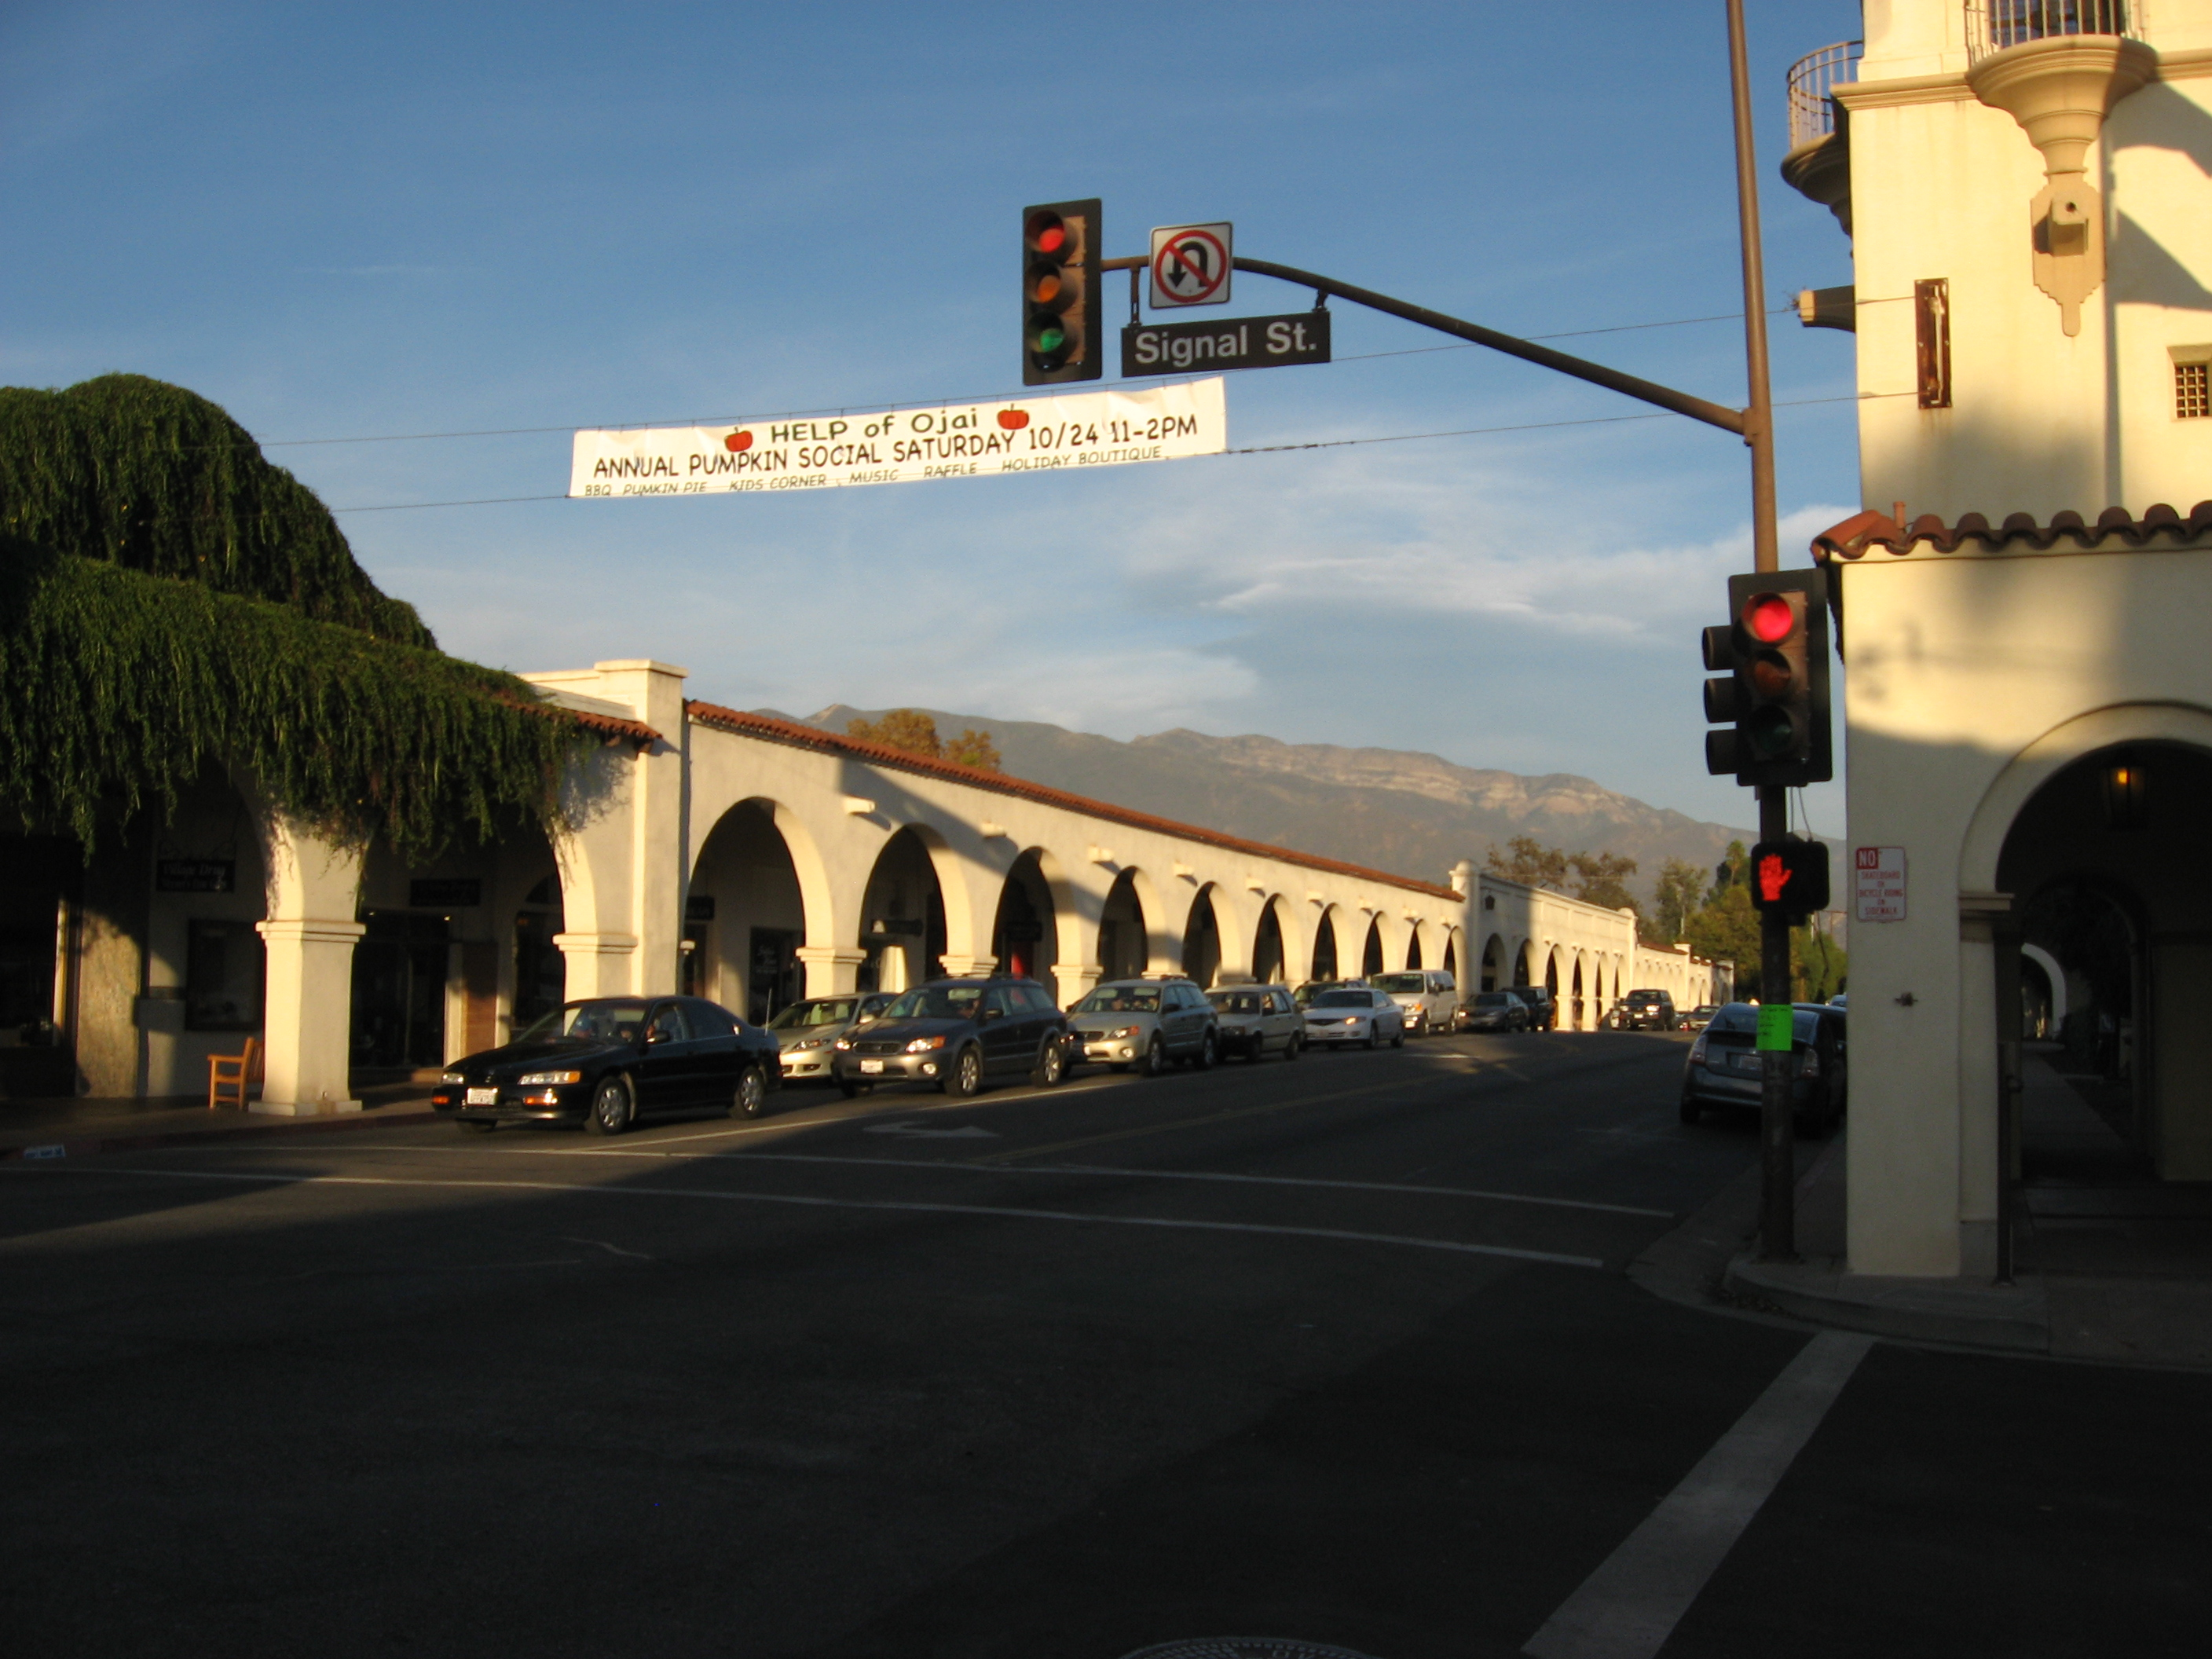 File:Ojai, California (12).jpg - Wikimedia Commons